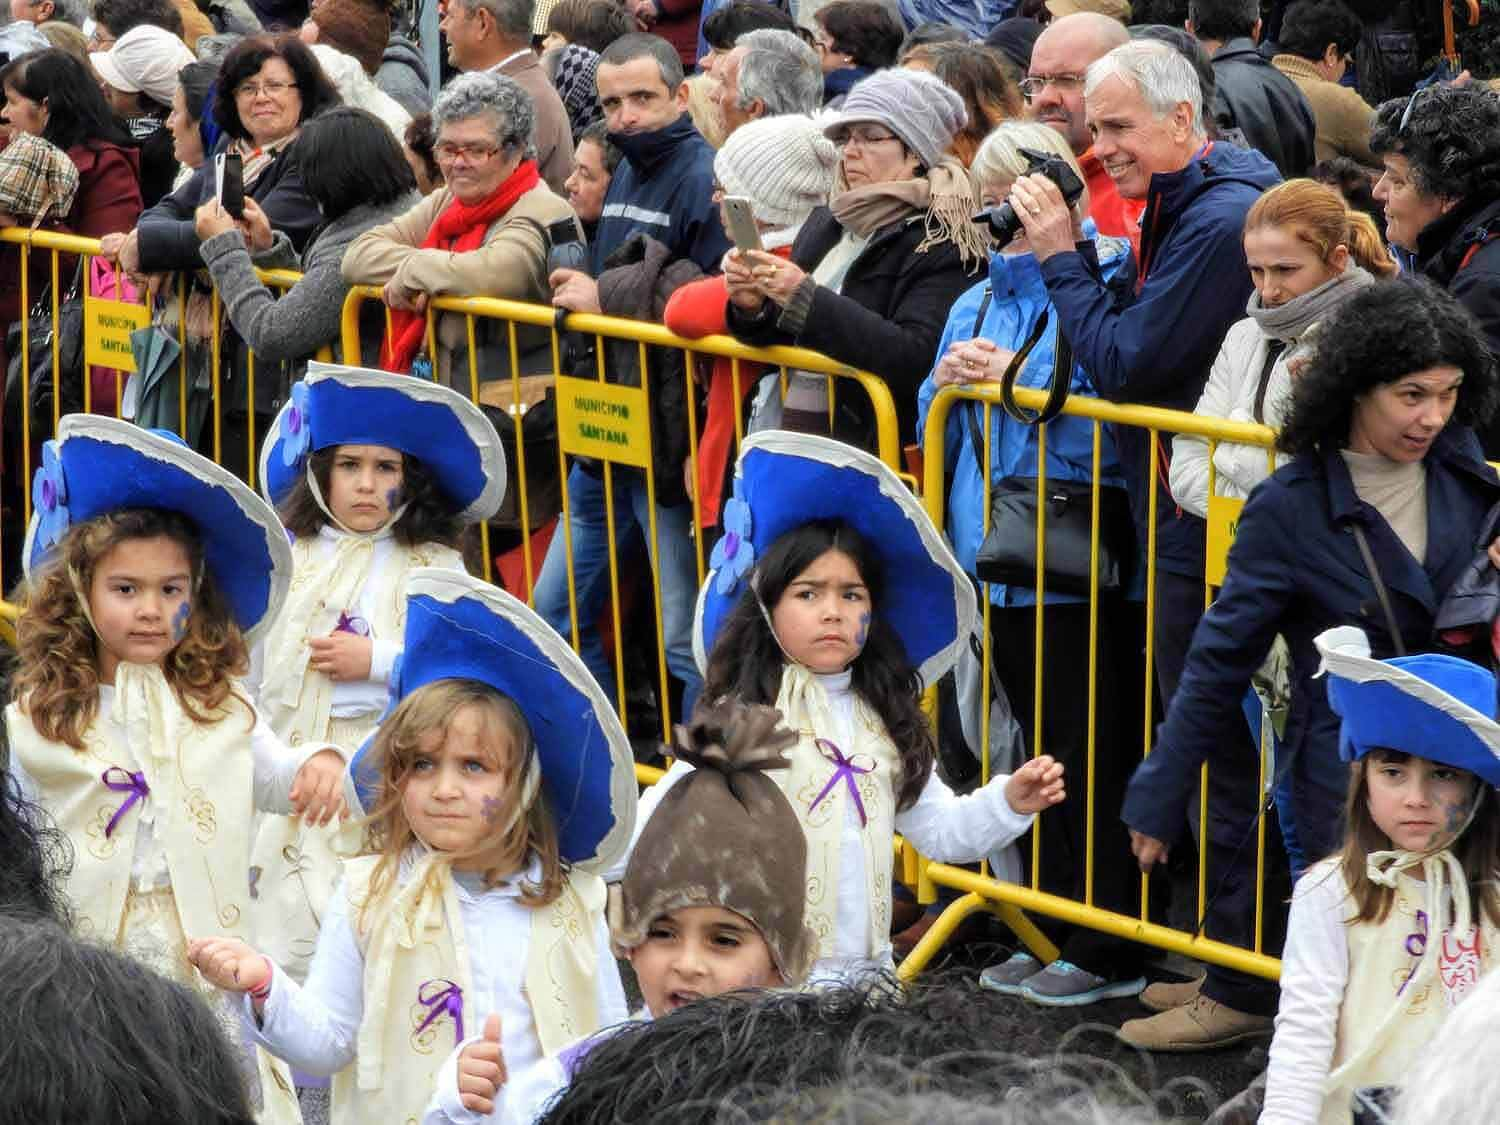 portugal-madeira-island-santana-festa-dos-compadres-children-singing-parade-cold-kids.jpg